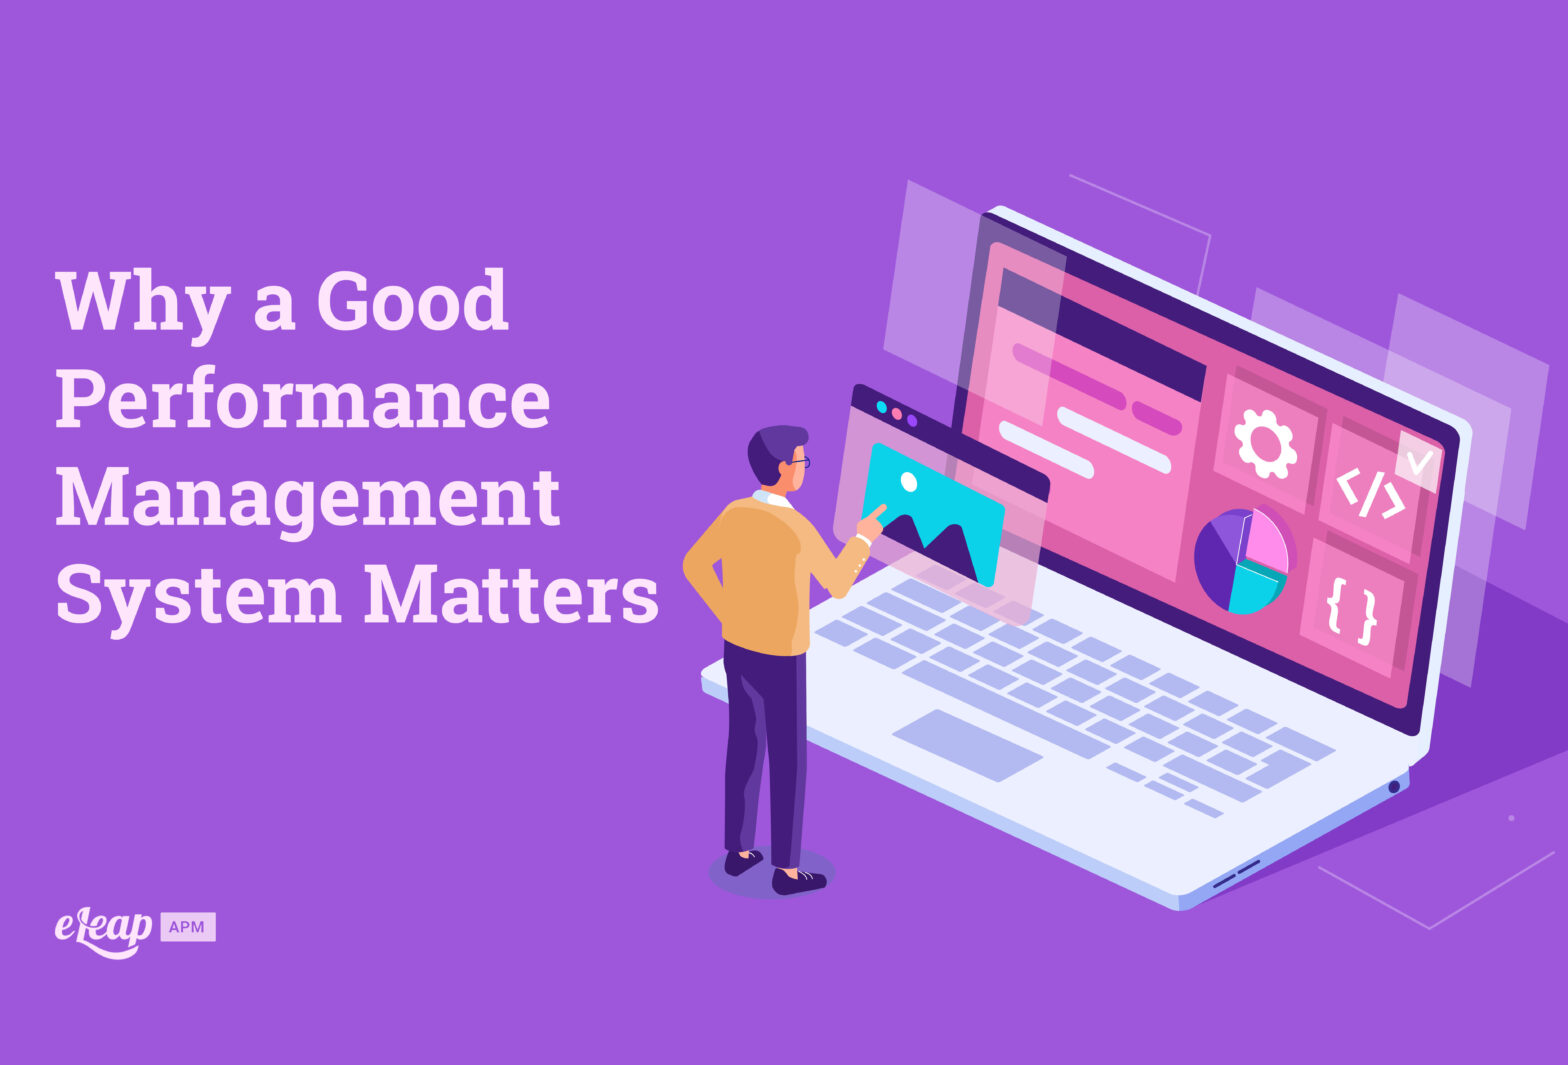 Why a Good Performance Management System Matters